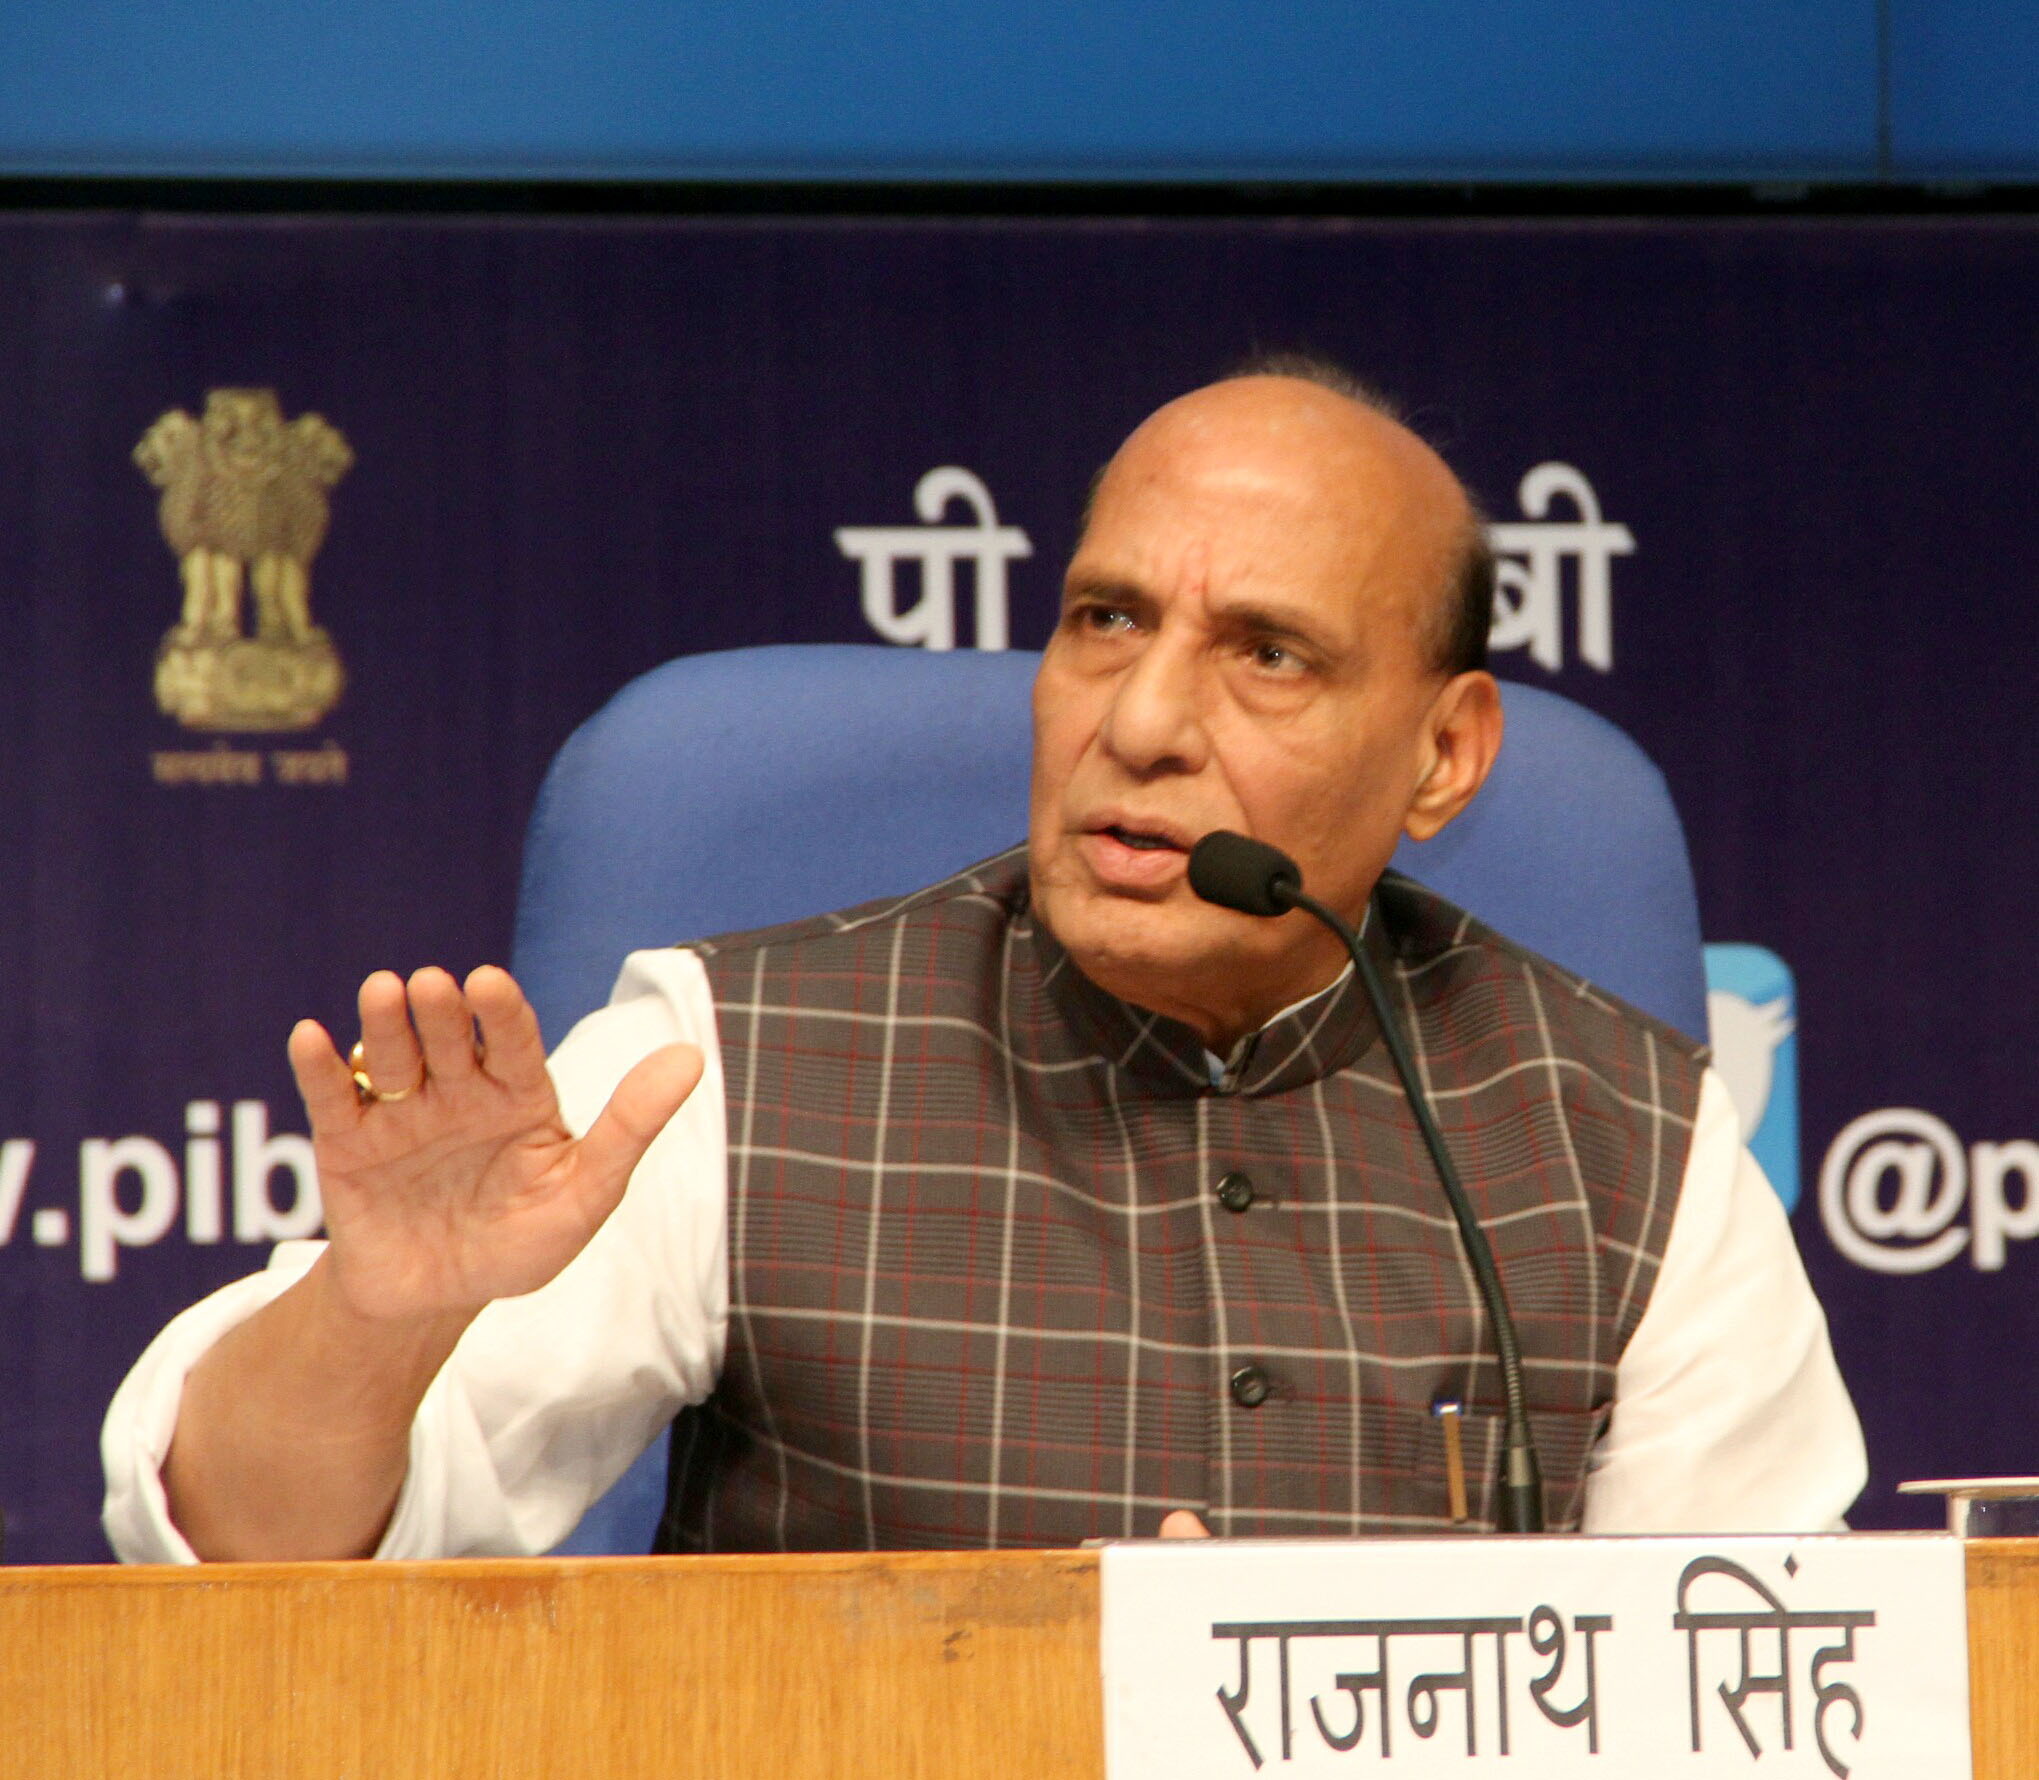 The Union Home Minister, Shri Rajnath Singh addressing at a press conference on the Achievements and Initiatives of the Ministry of Home Affairs during 3 years of NDA Government, in New Delhi on June 03, 2017.